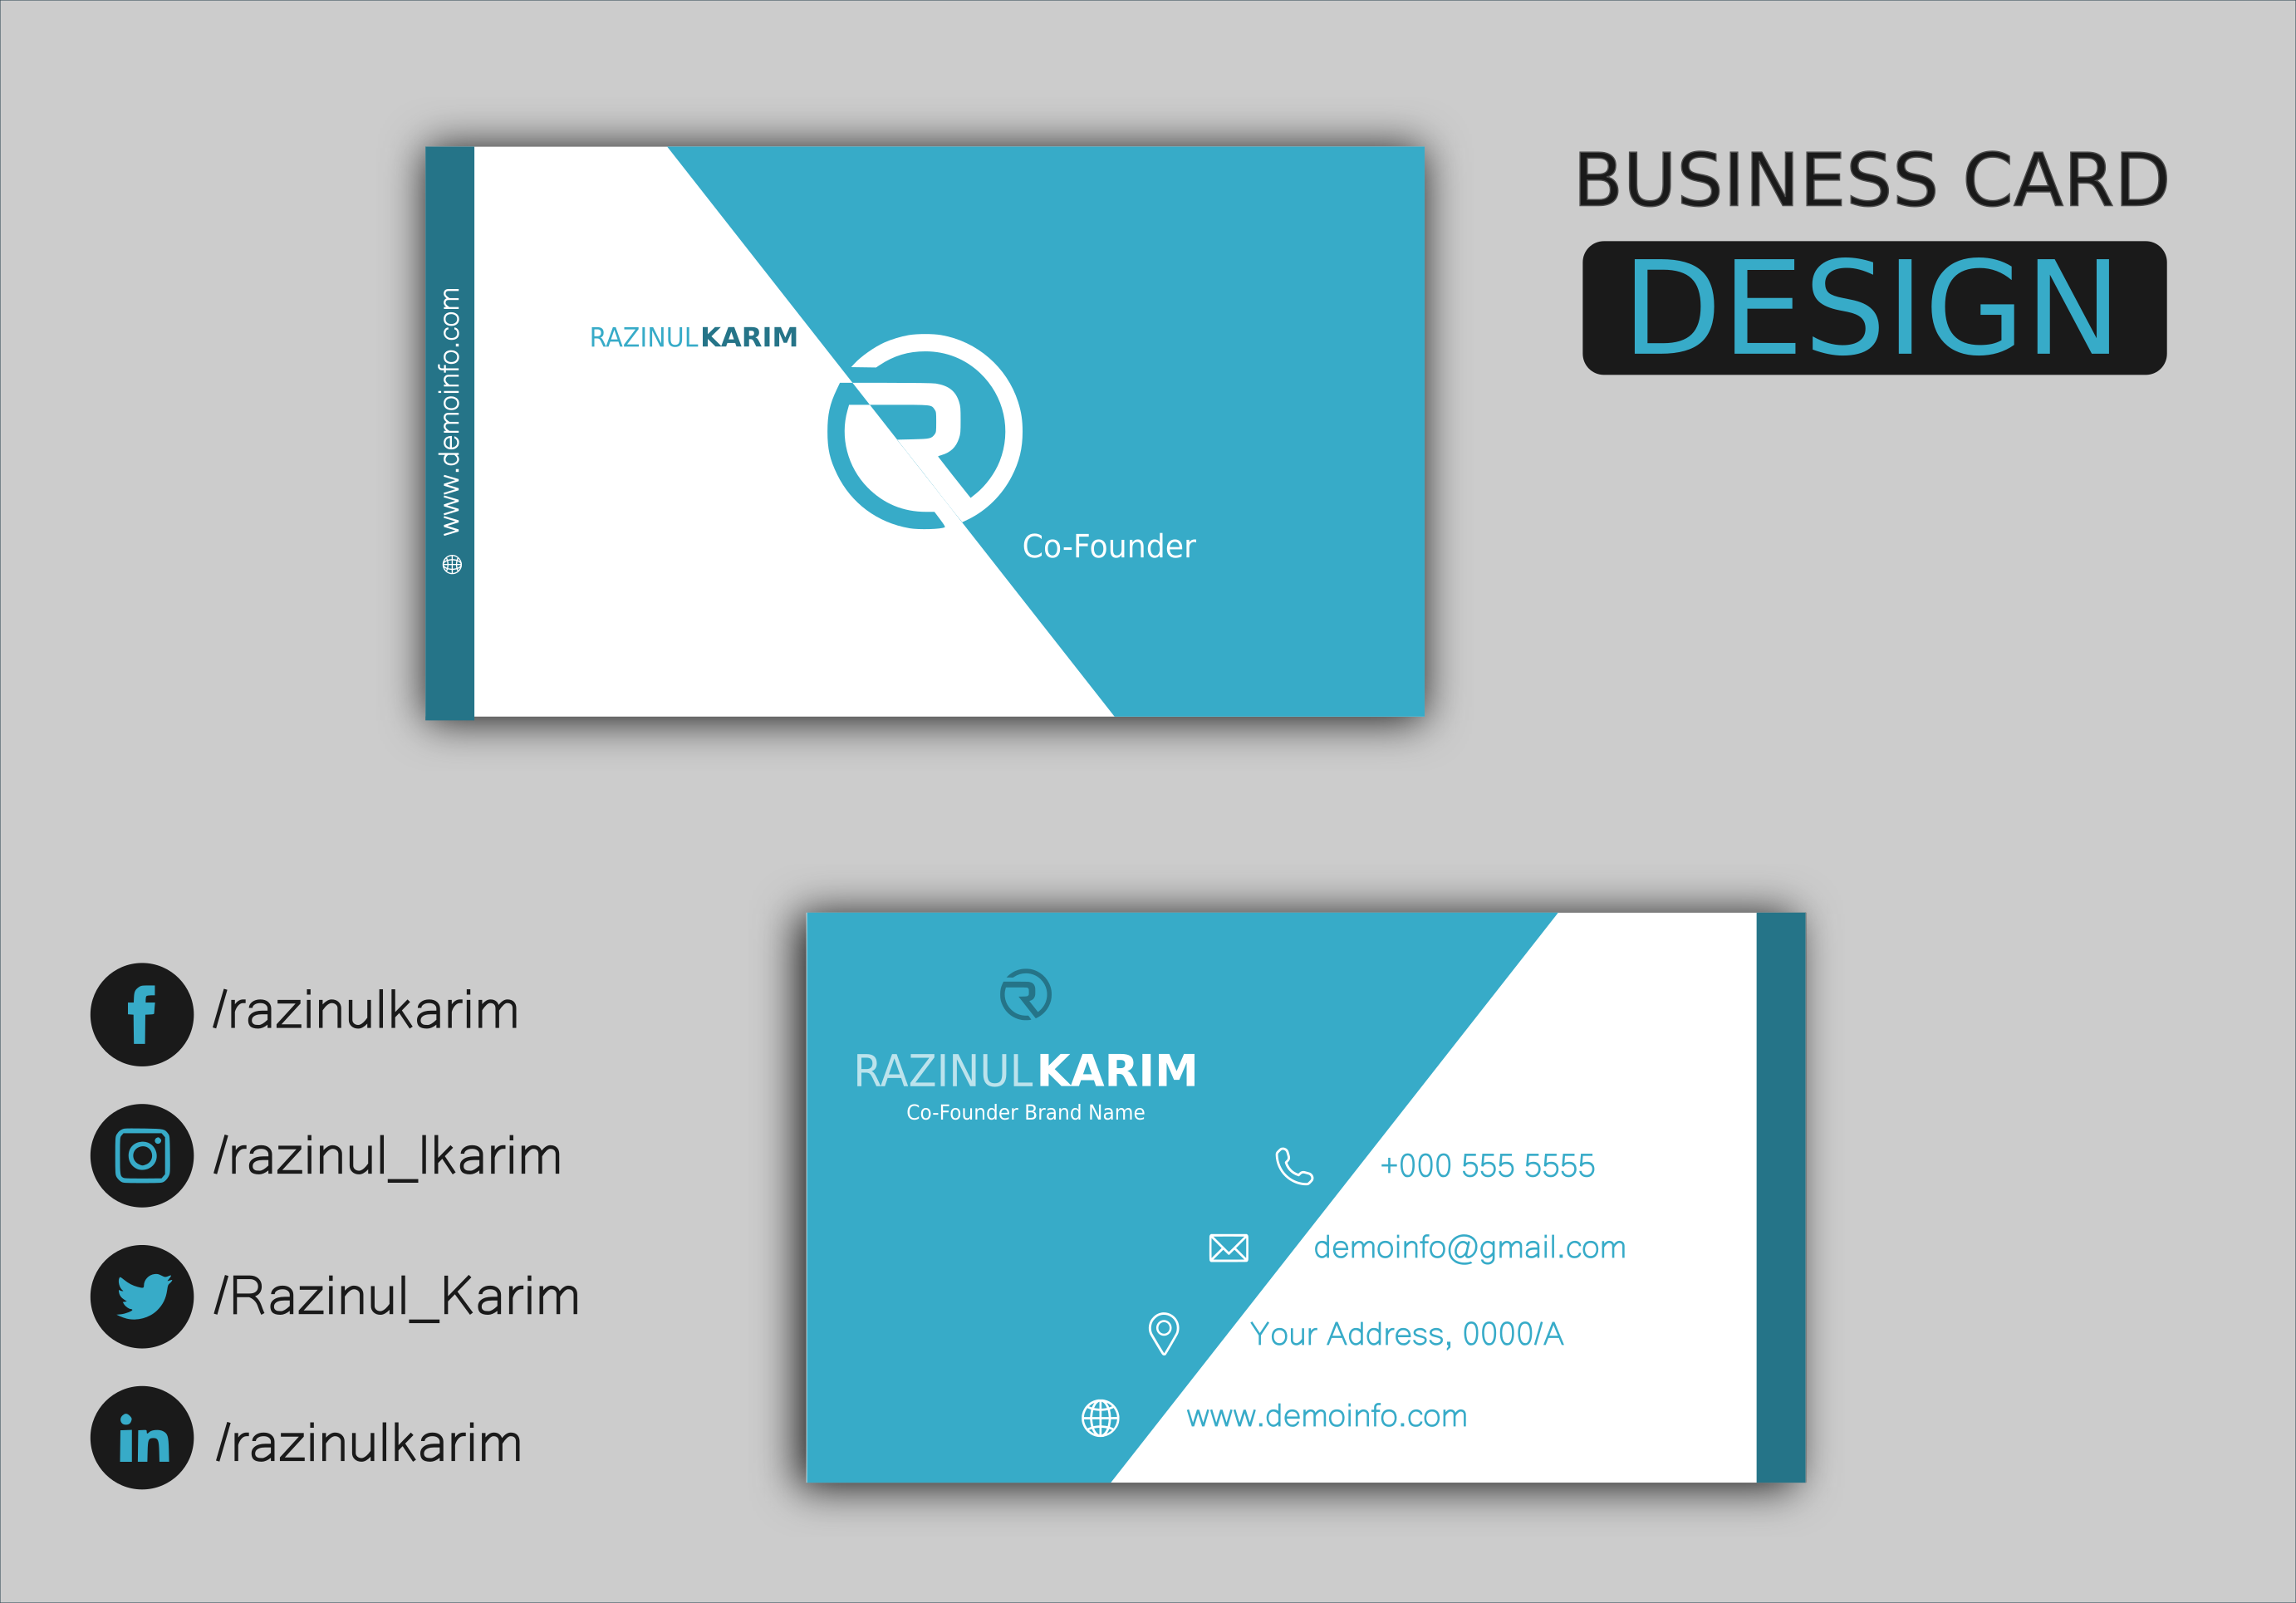 Get Classy Premium Business Card within 12 hours